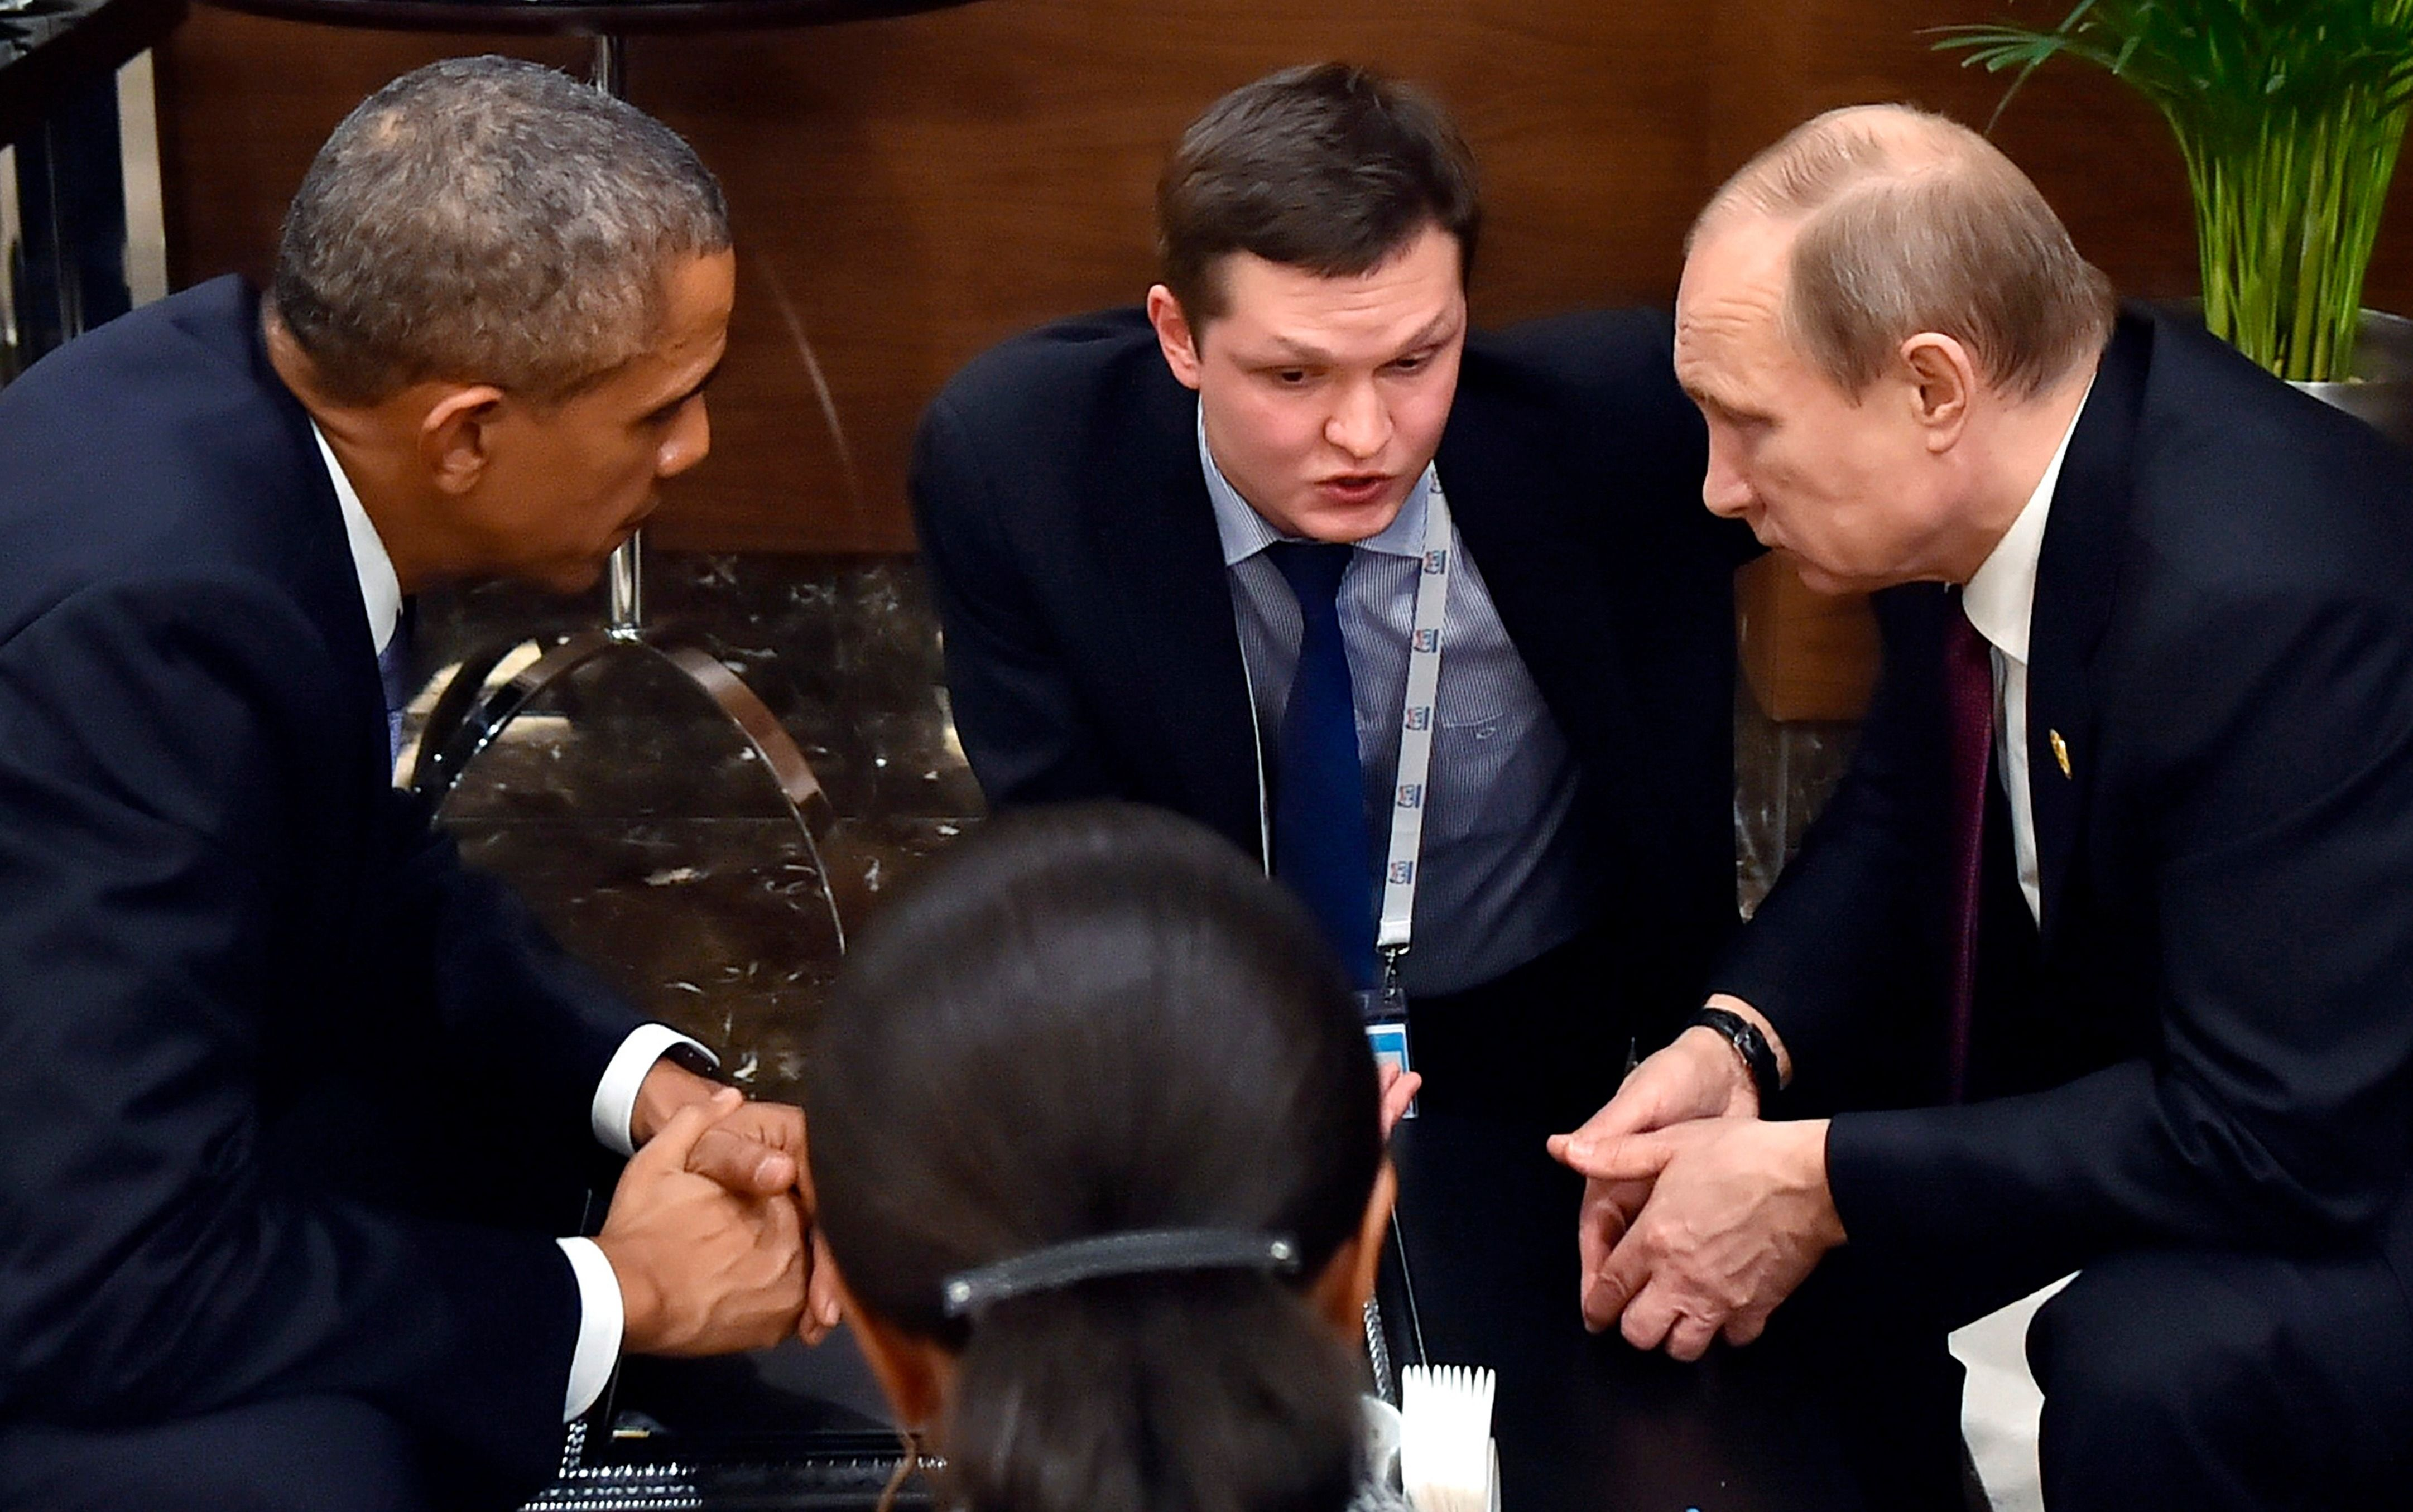 Obama and Putin meet for talks in aftermath of Paris attacks